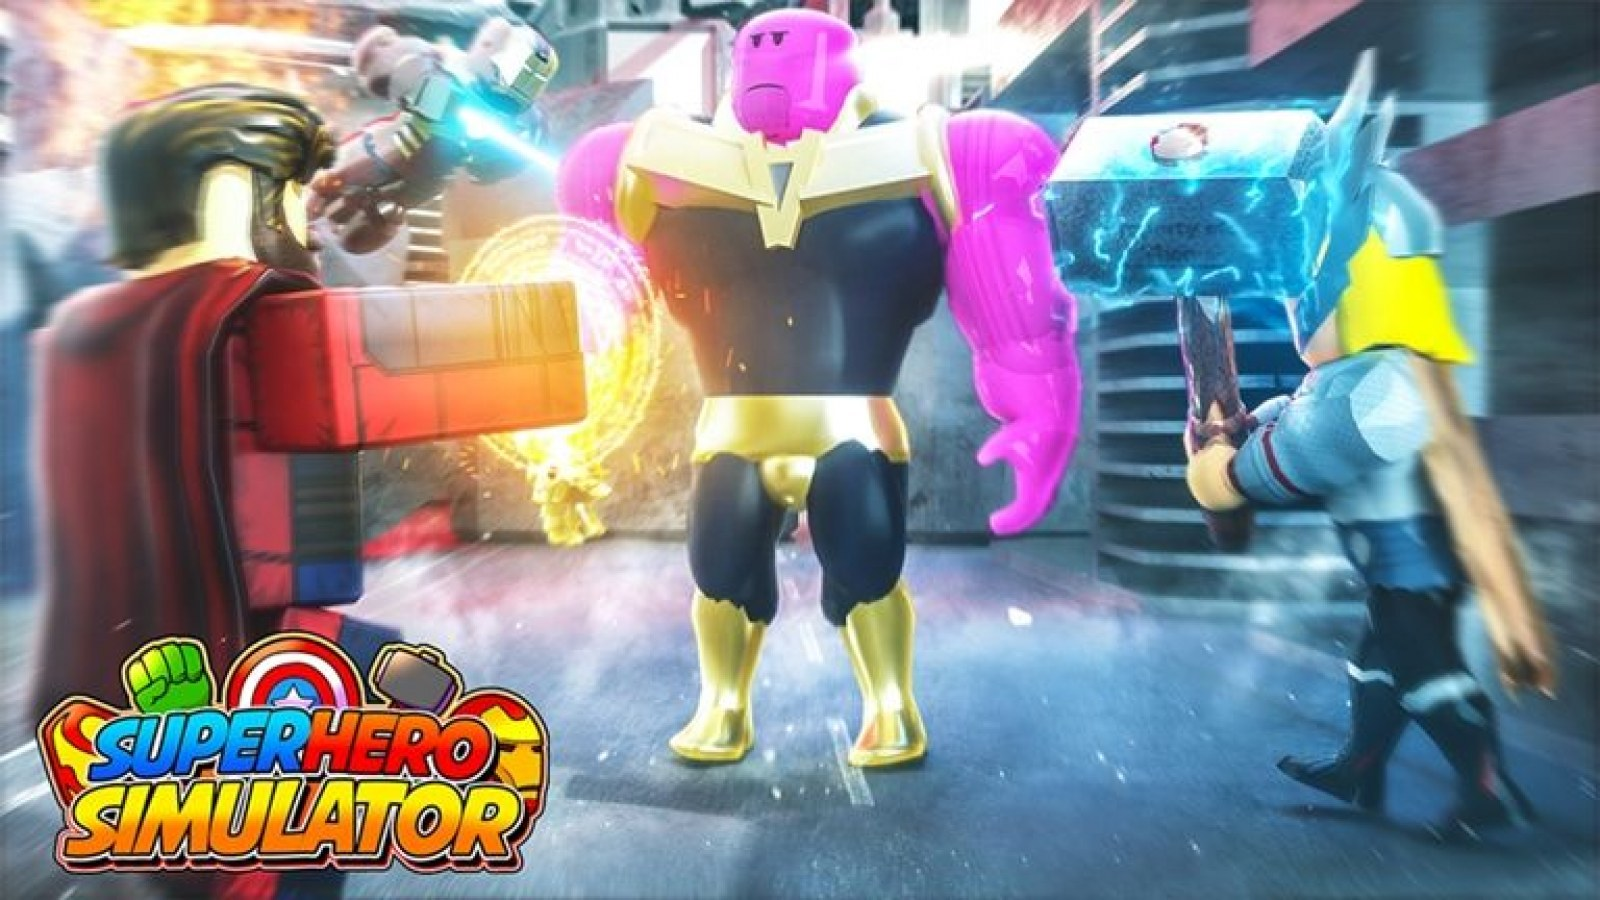 Superhero Simulator' Codes: All Working Roblox Codes to Get